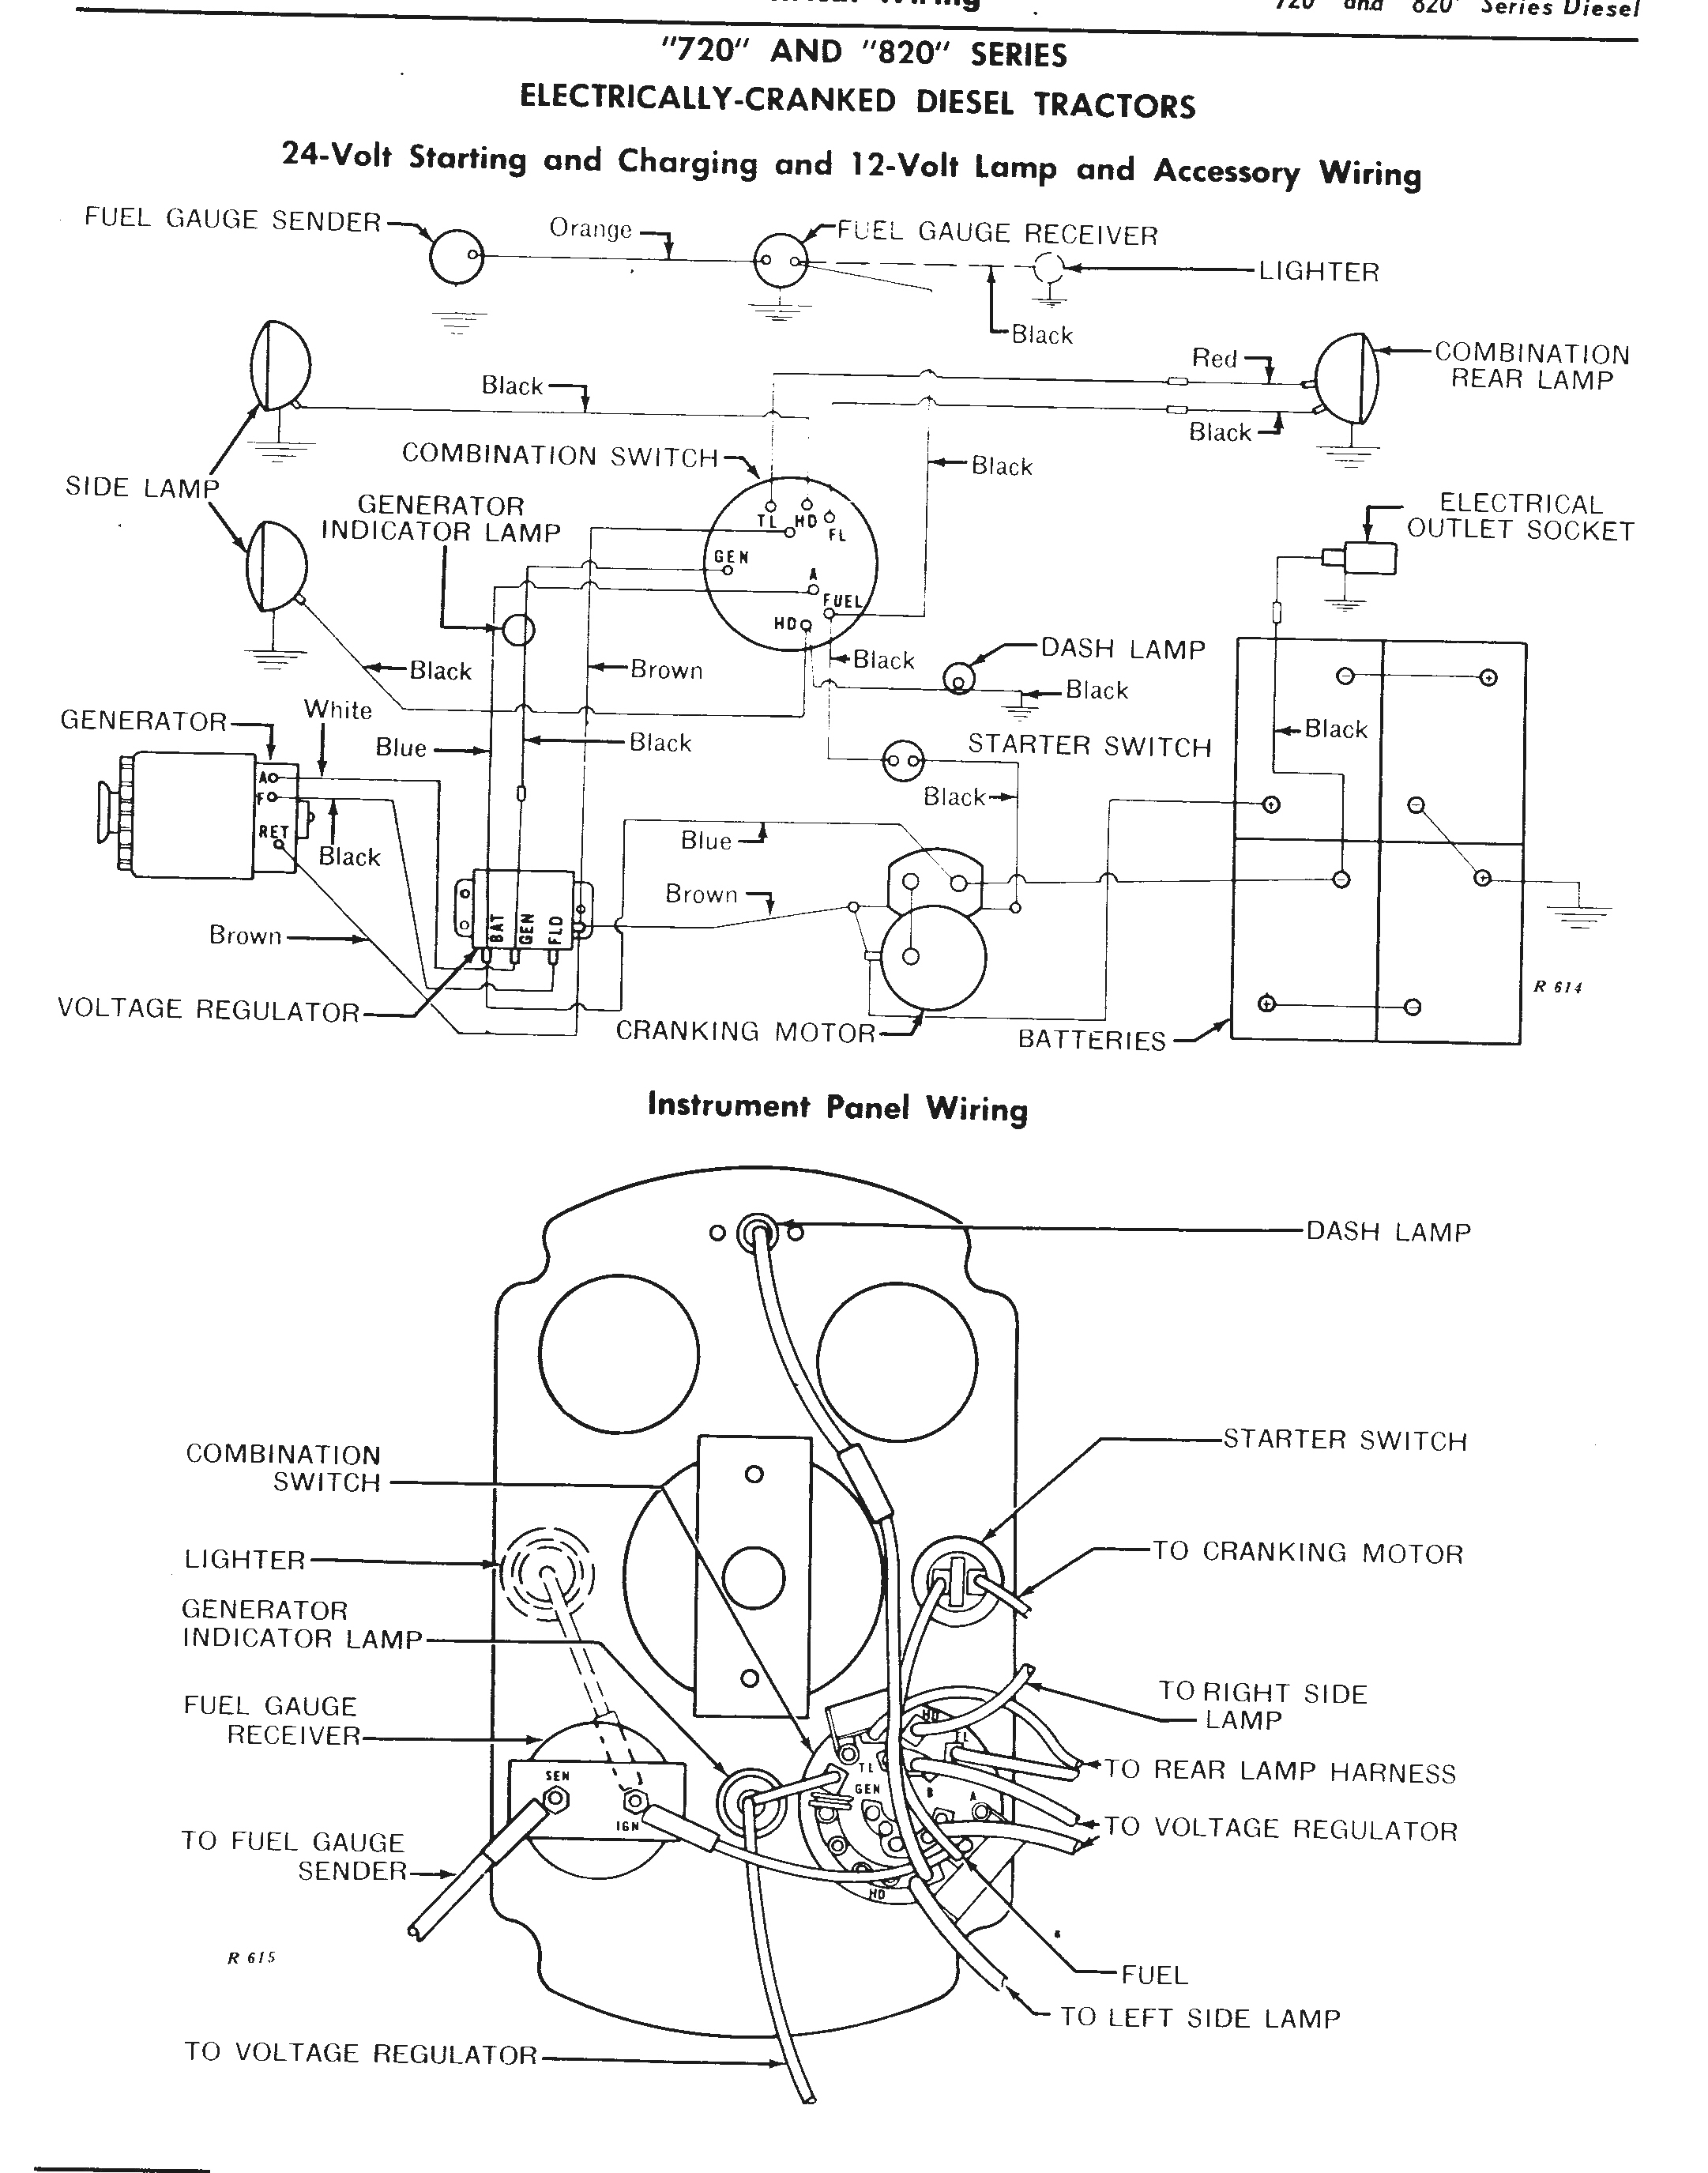 Jd 4020 Wiring Diagram - Wiring Diagram 500 John Deere Wiring Diagram on